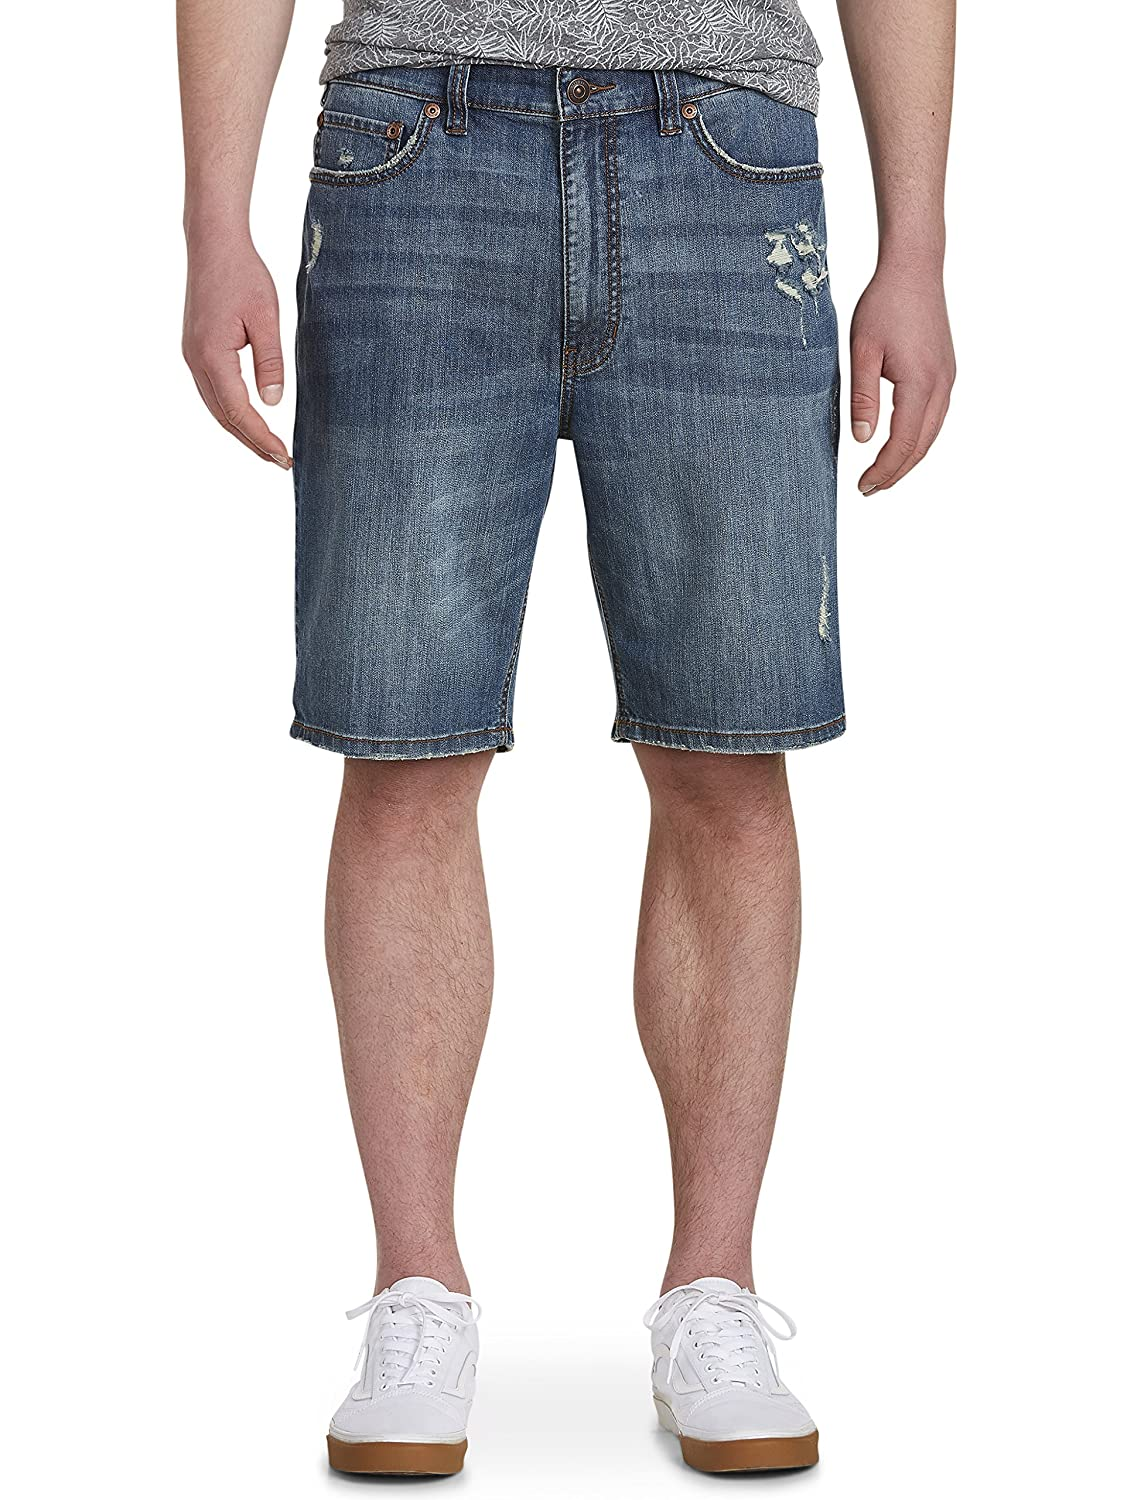 True Nation by DXL Big and Tall Deakin Blue Athletic-Fit Denim Shorts